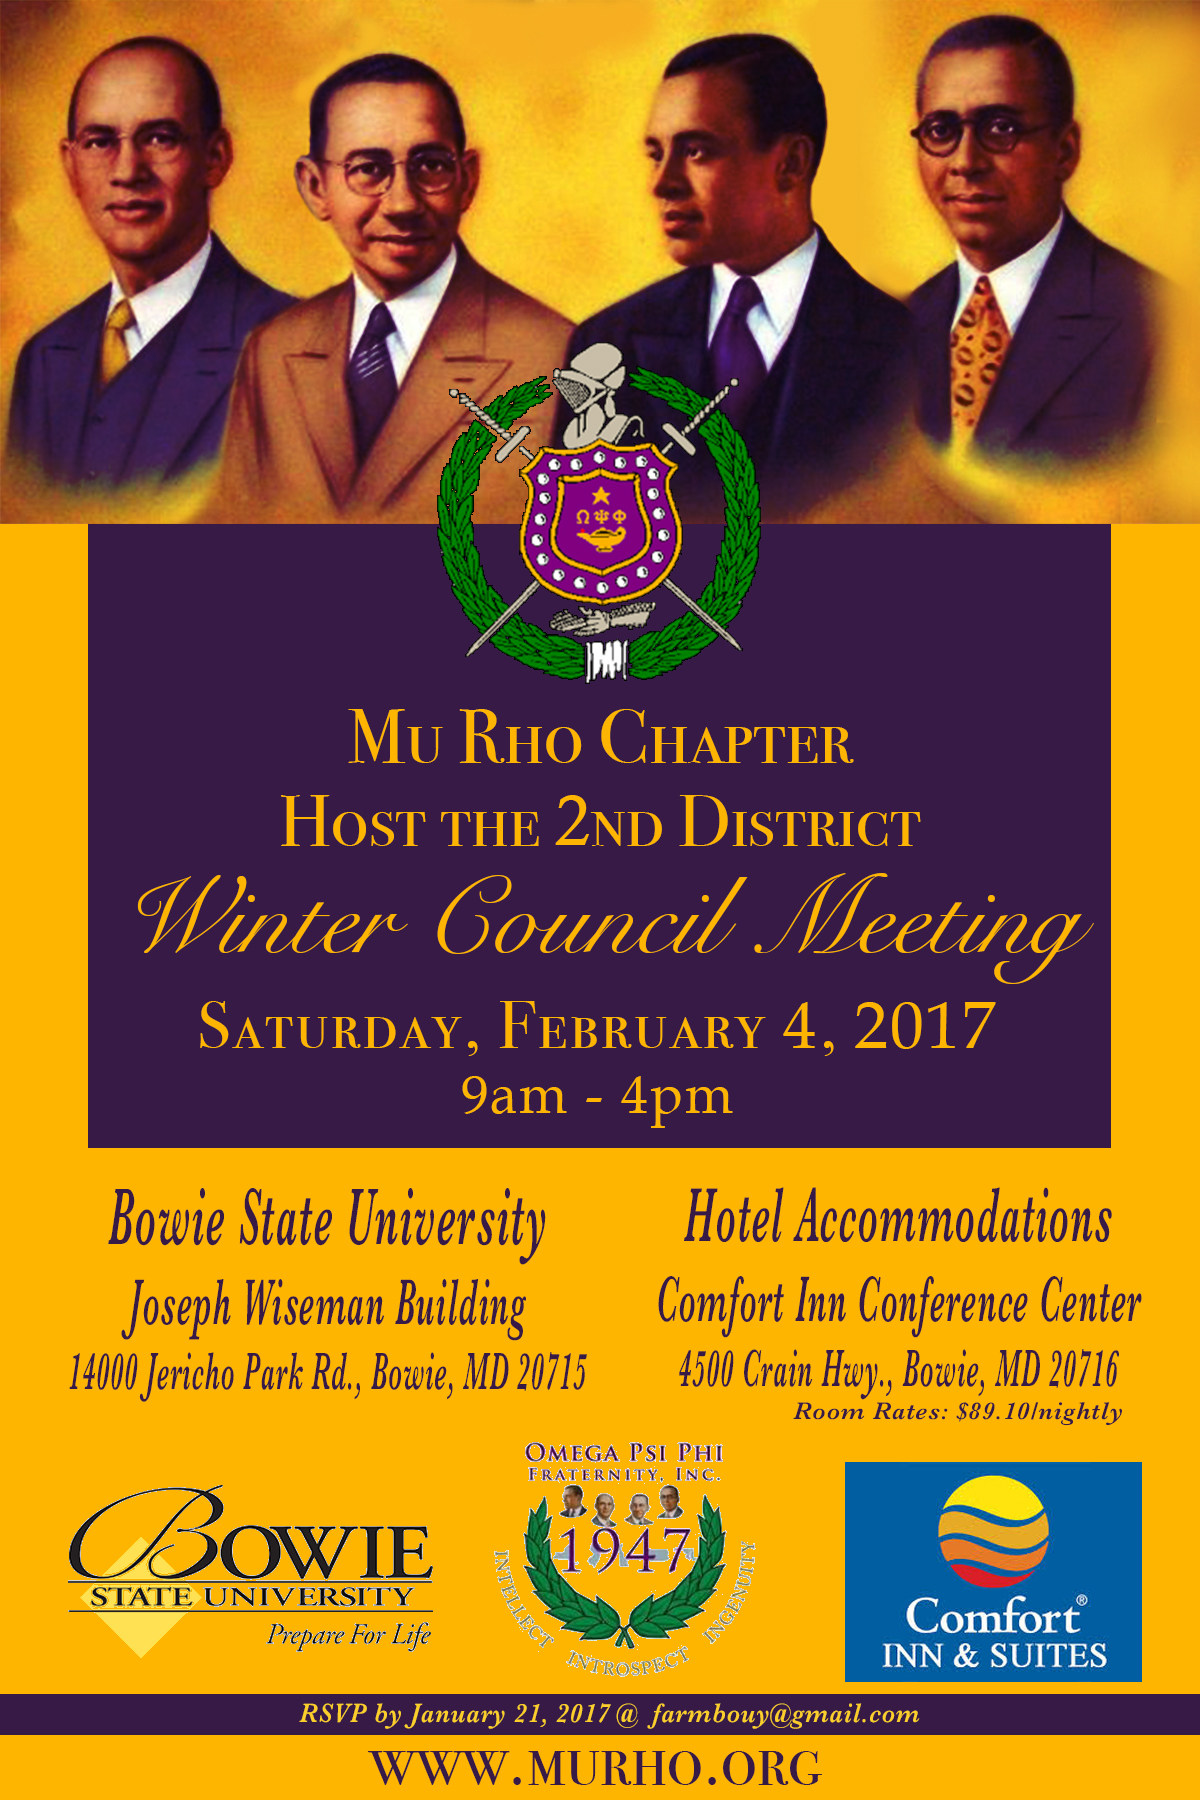 omega psi phi fraternity national high school essay contest